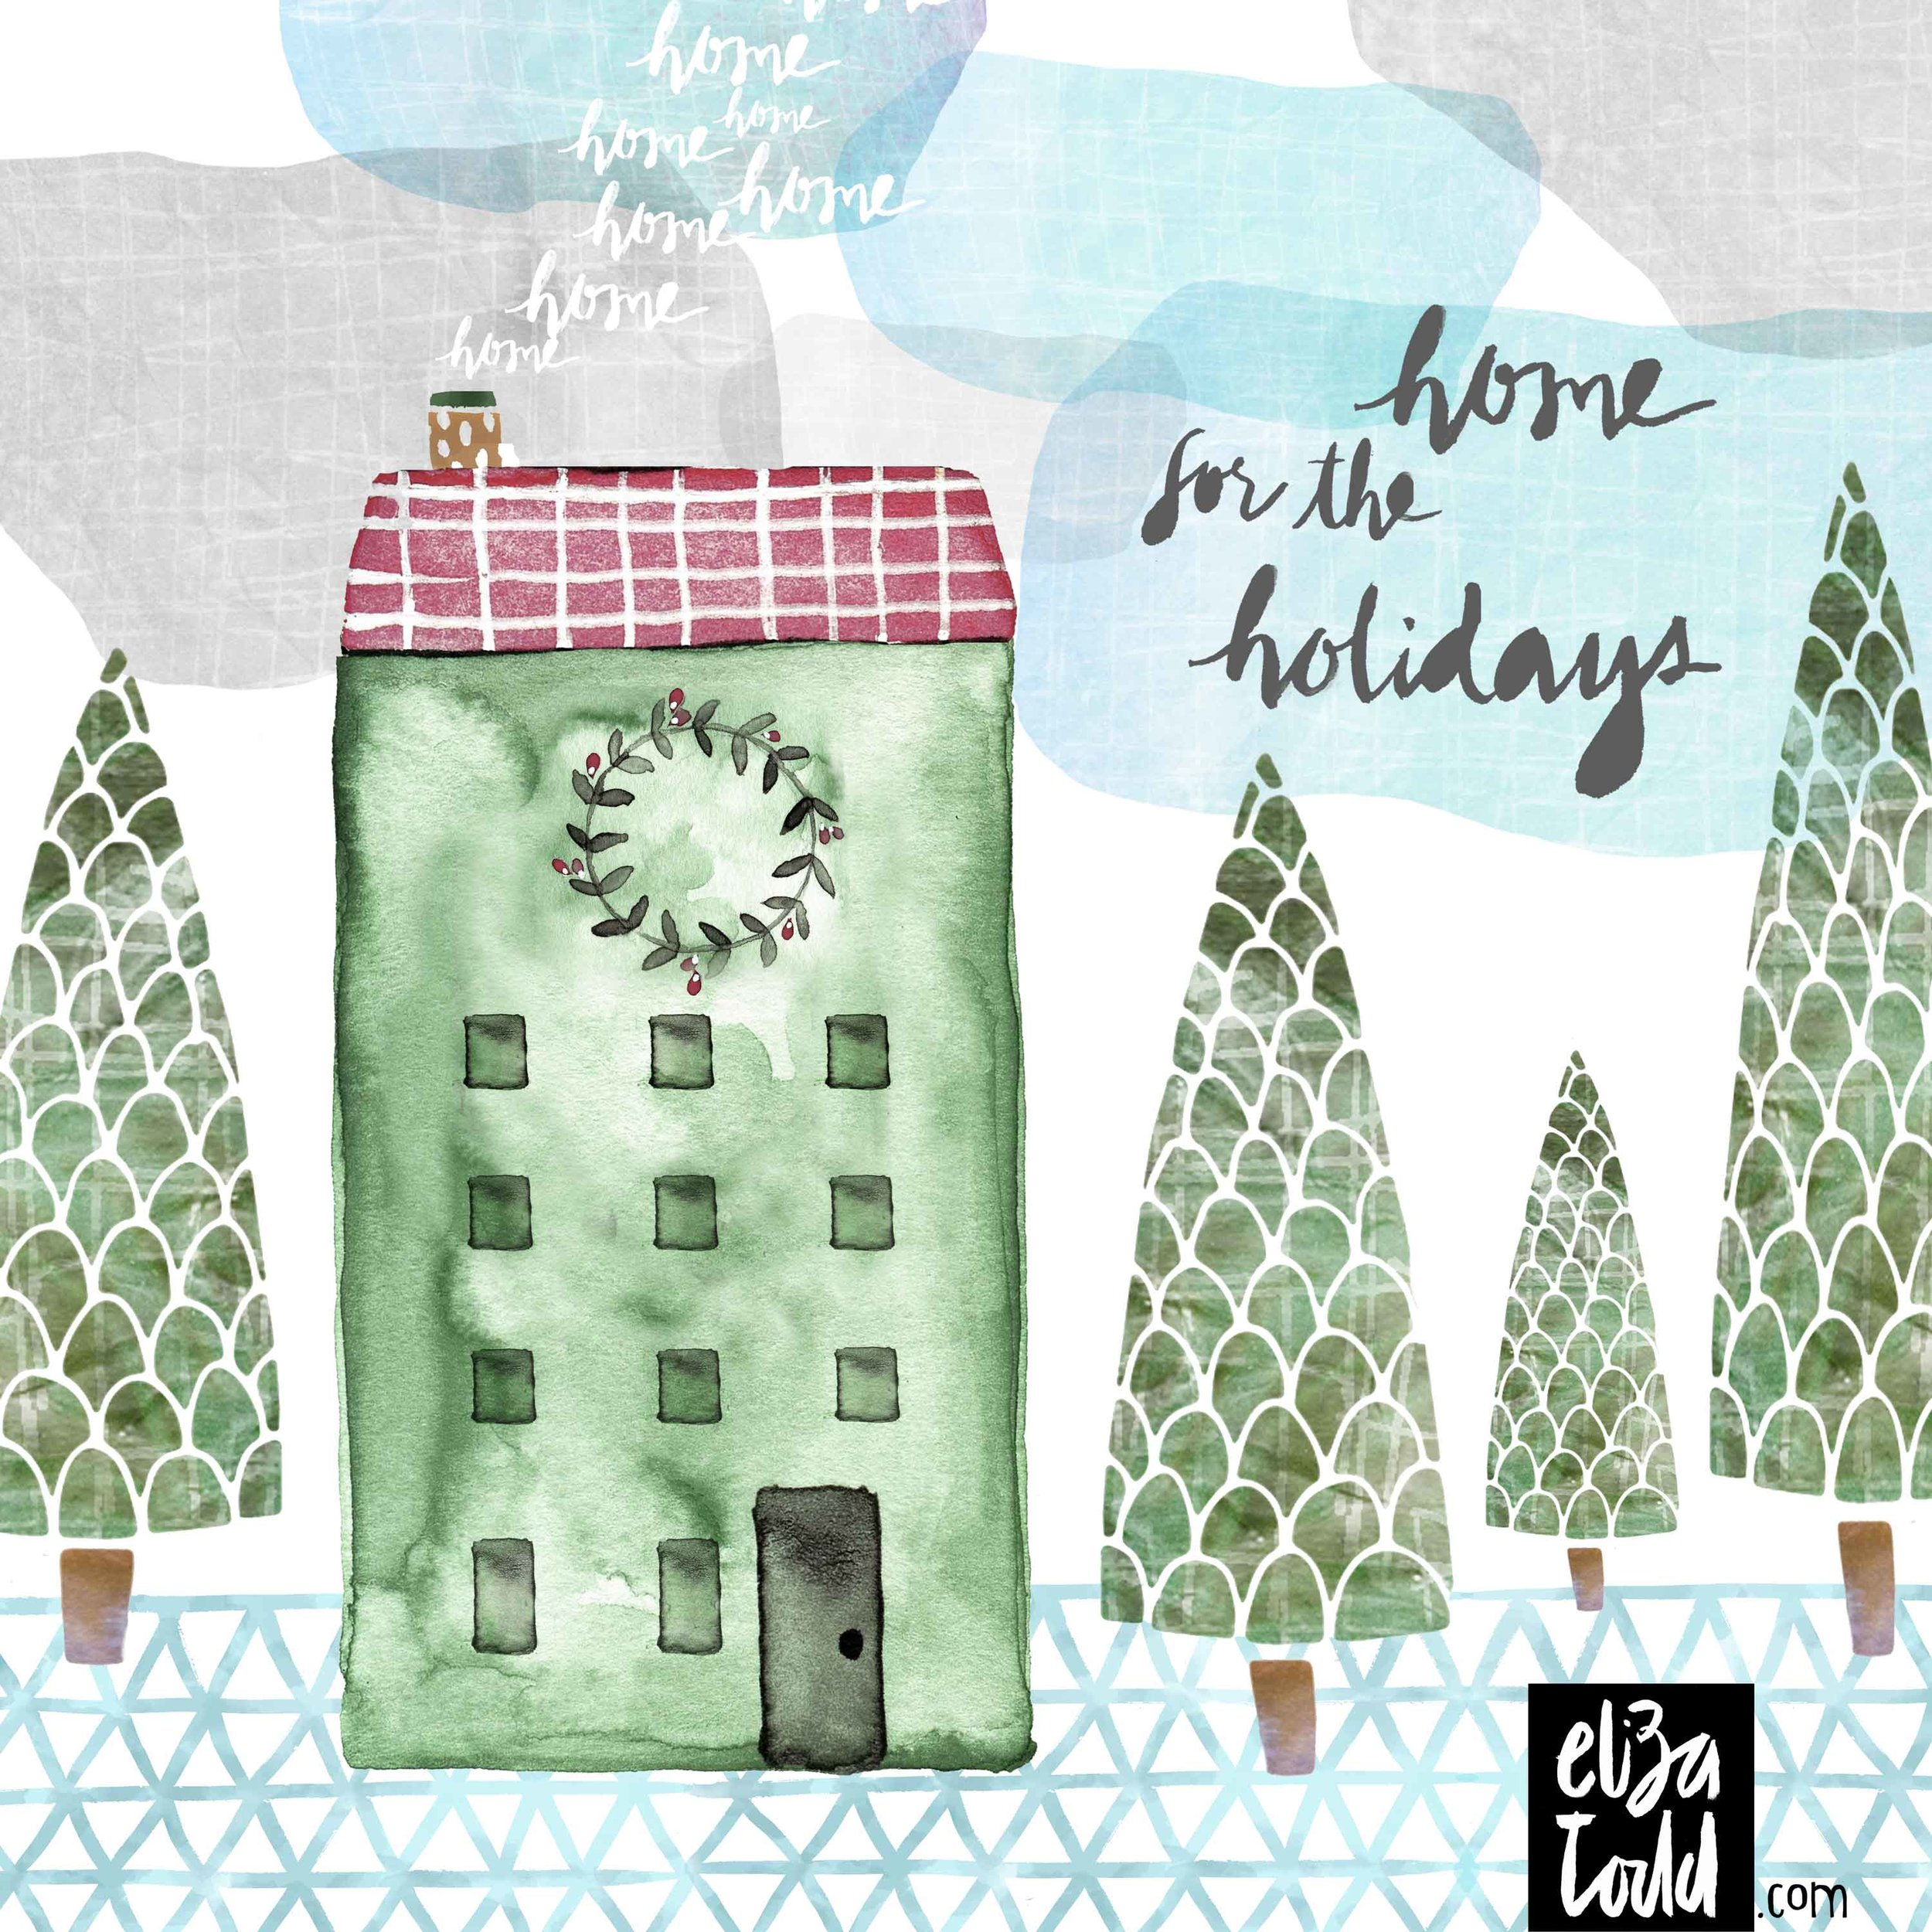 elizatodd_home-for-the-holidays.jpg